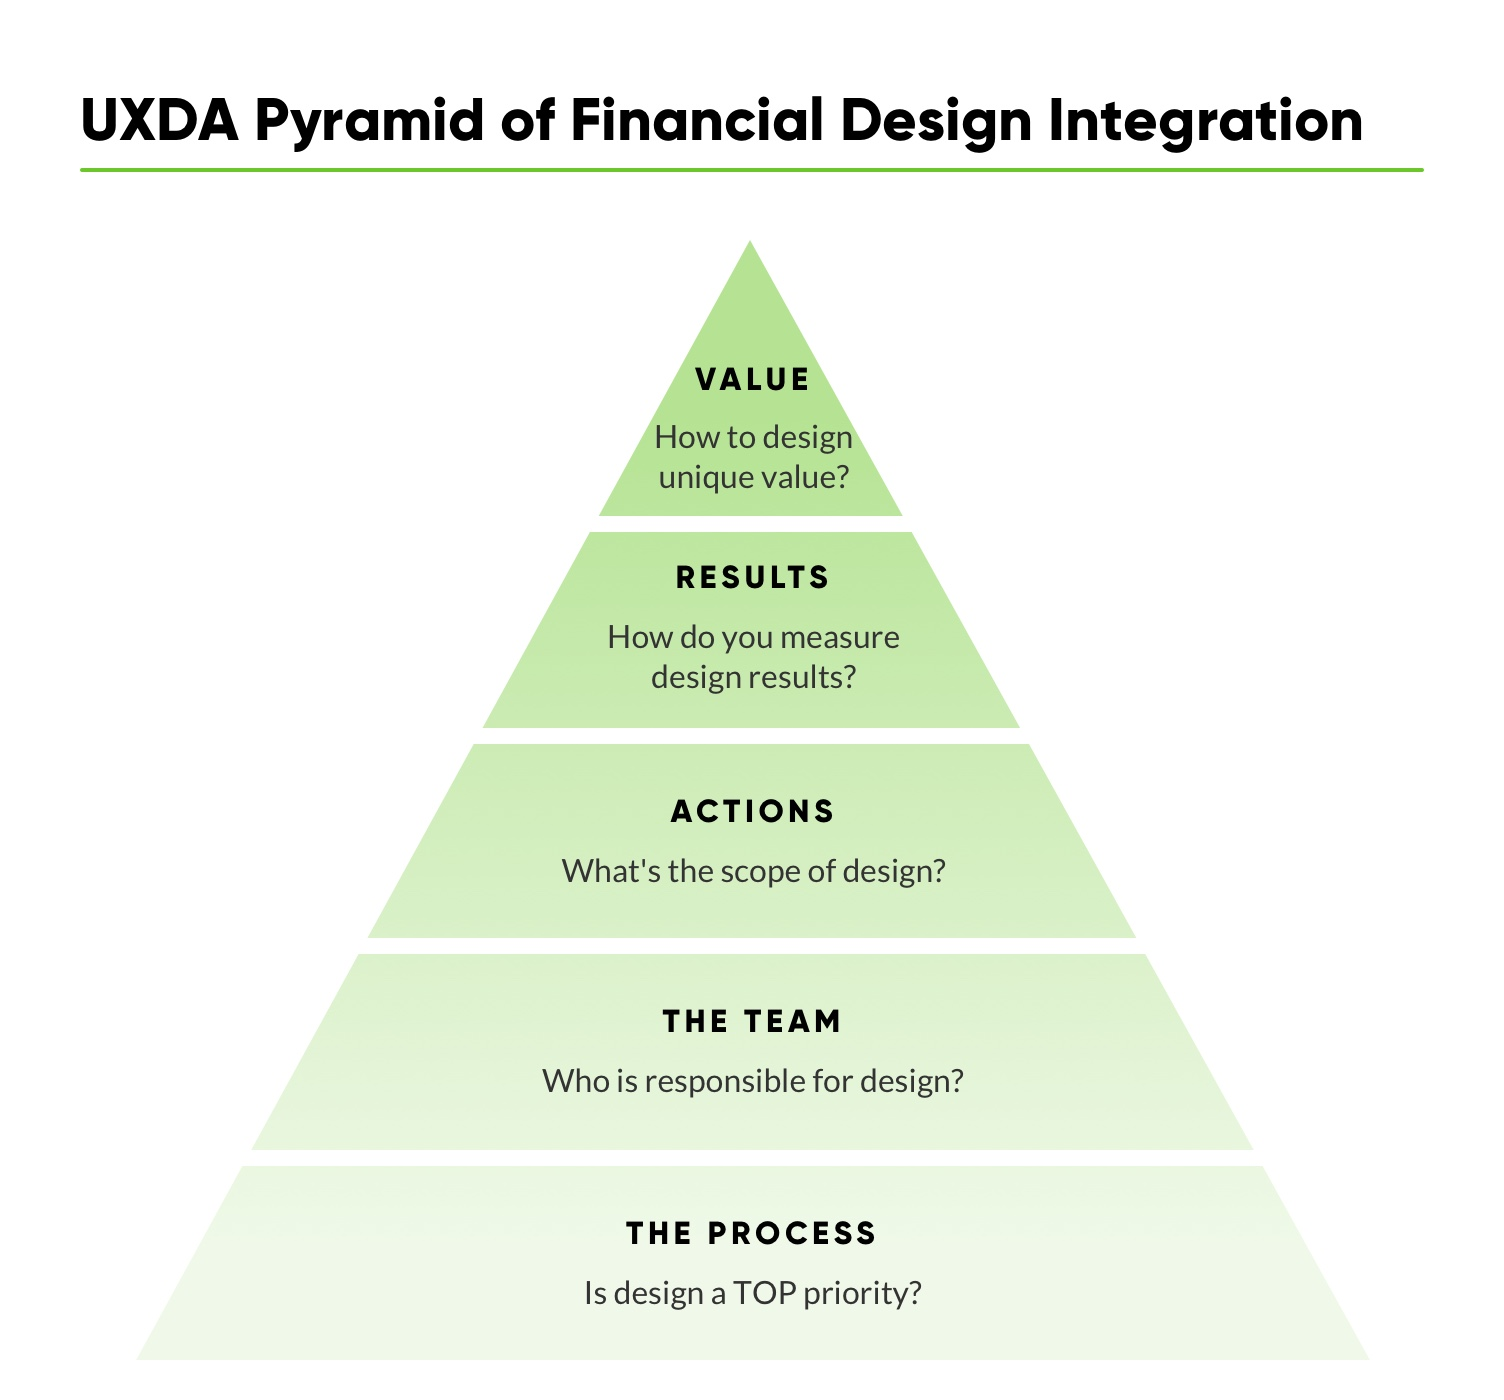 financial-ux-design-methodology-uxda-financial-design-integration-5-S.jpg